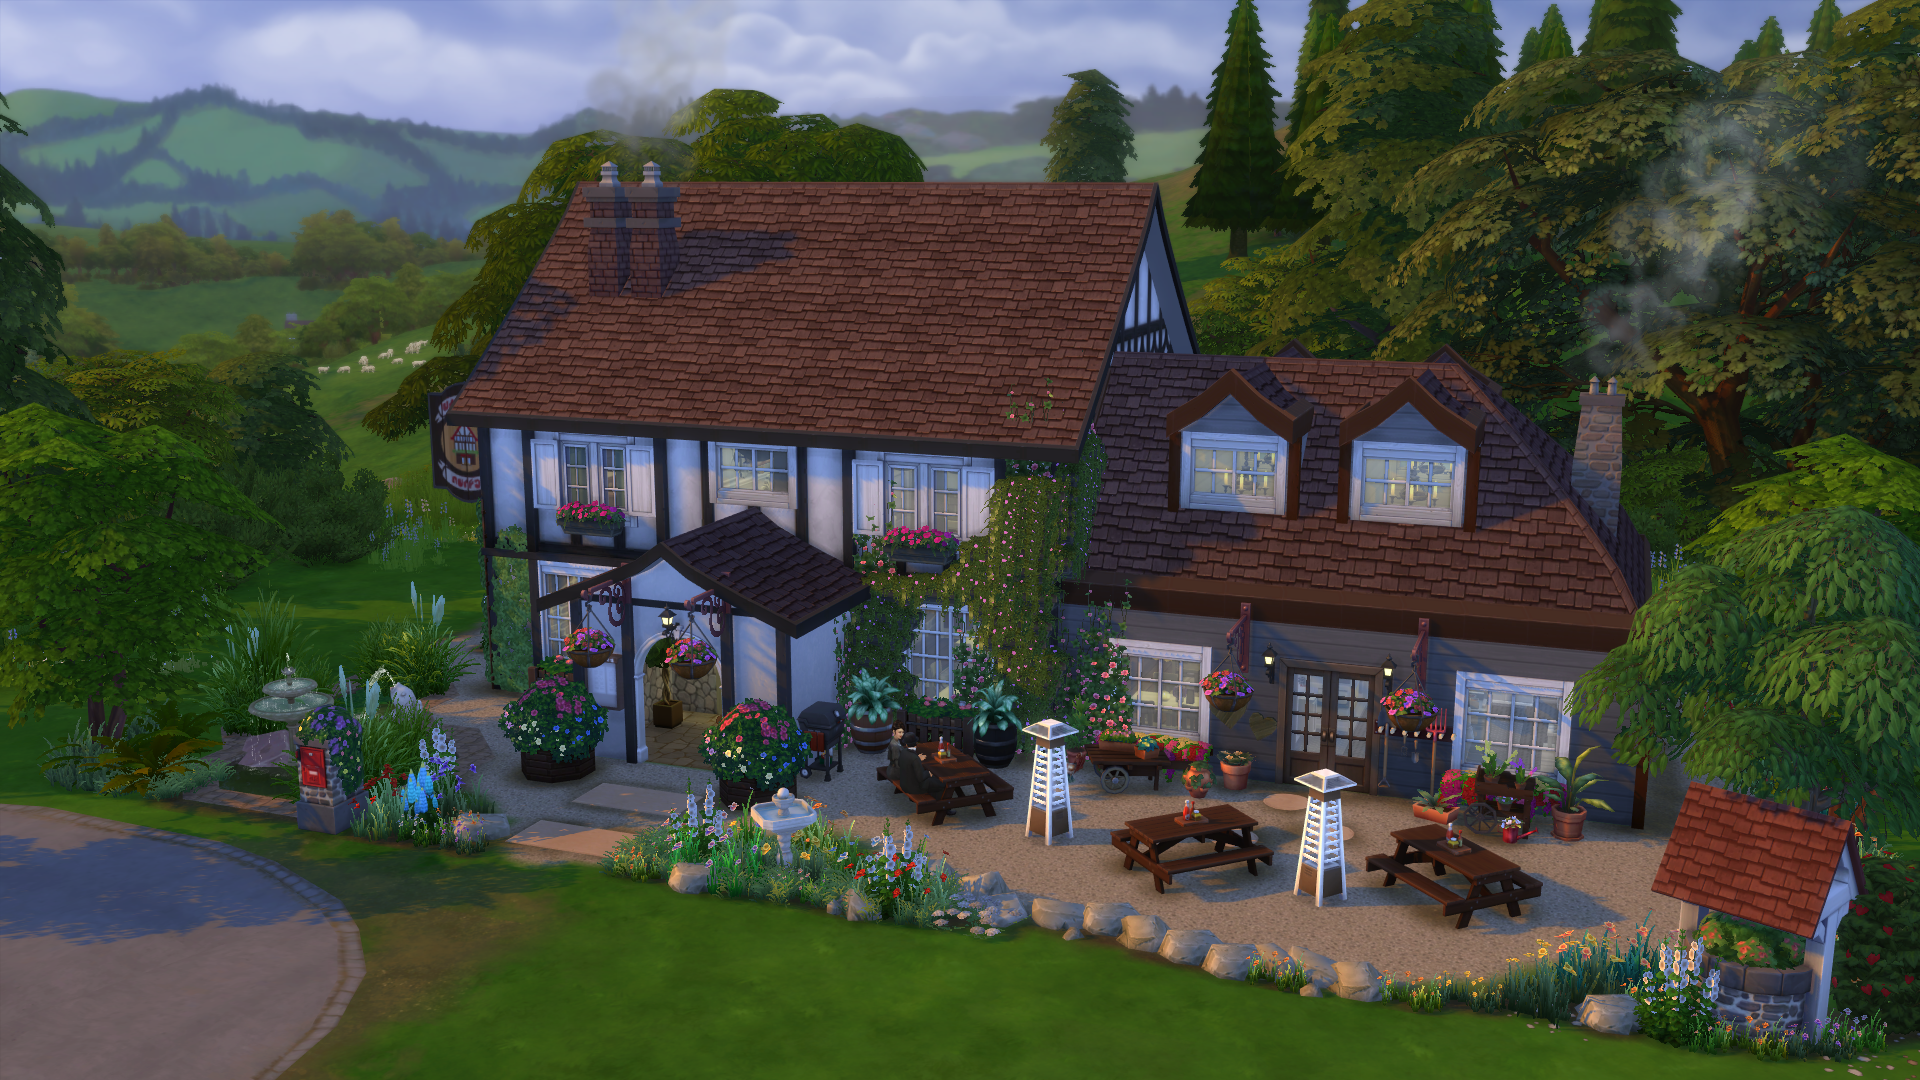 The sims 4 dine out building ideas simsvip for House building ideas